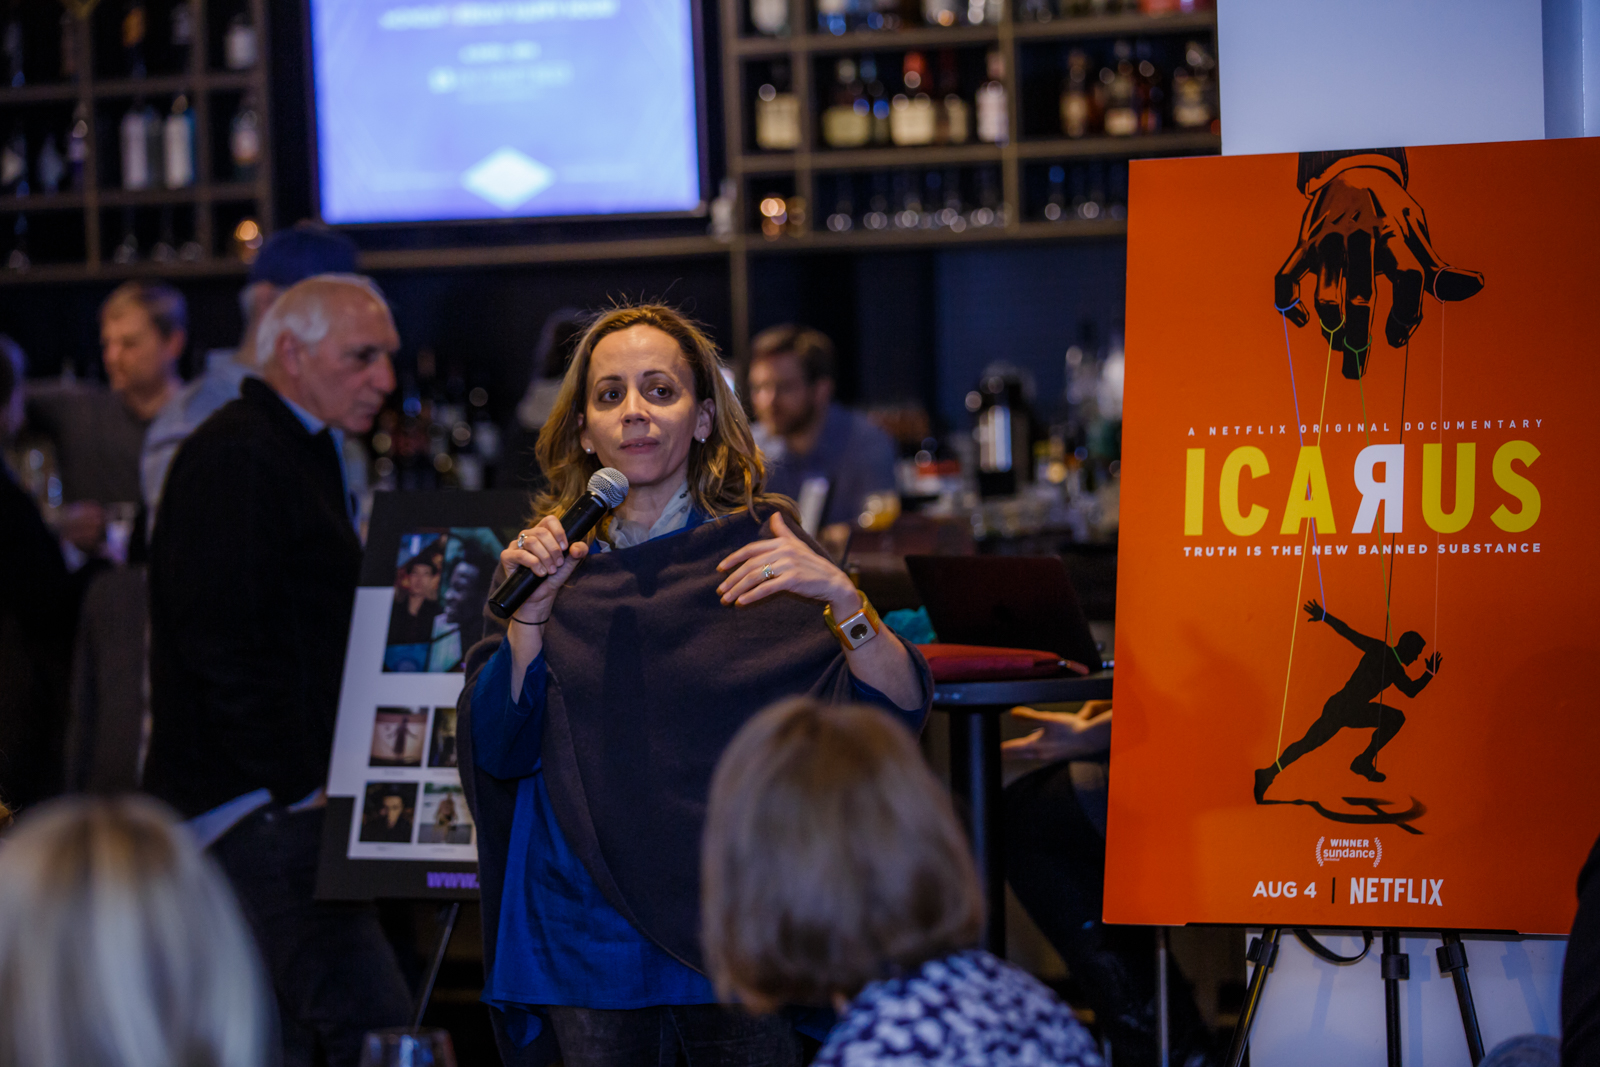 180222-dinner-and-docs-icarus-020.jpg